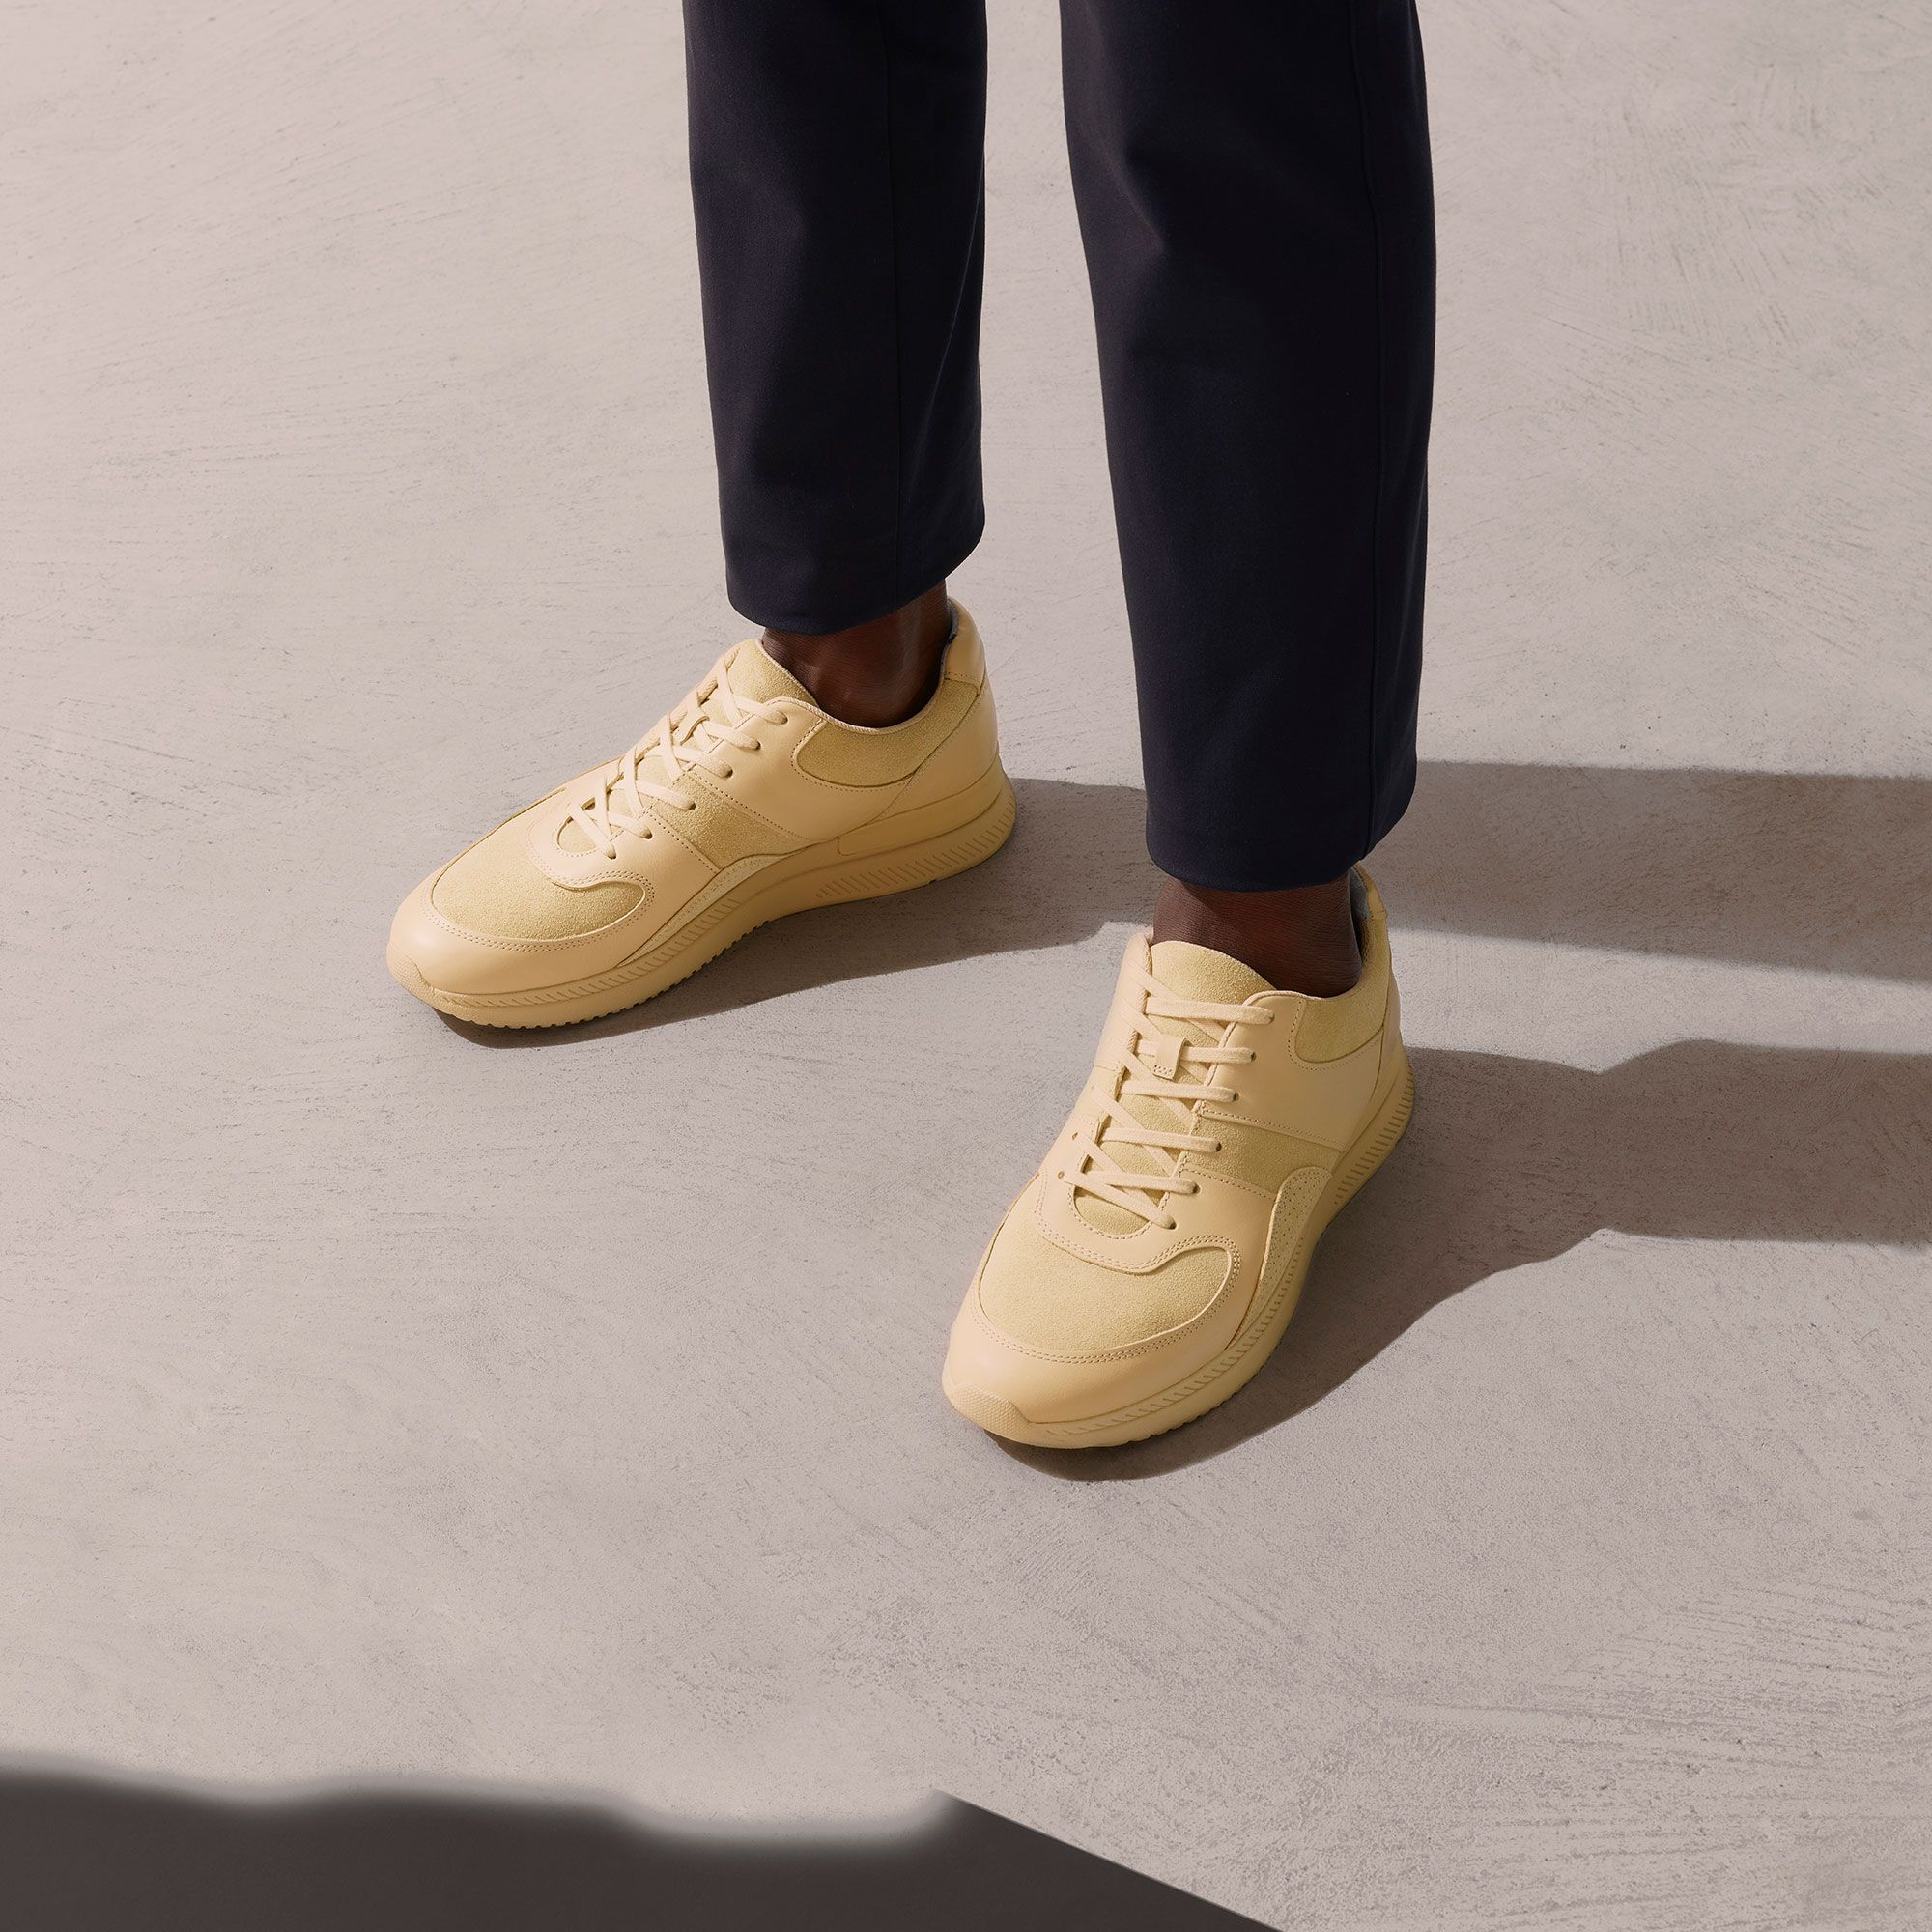 Everlane Finally Launched Its 'Tread' Sneaker Brand. It Was Worth the Wait.